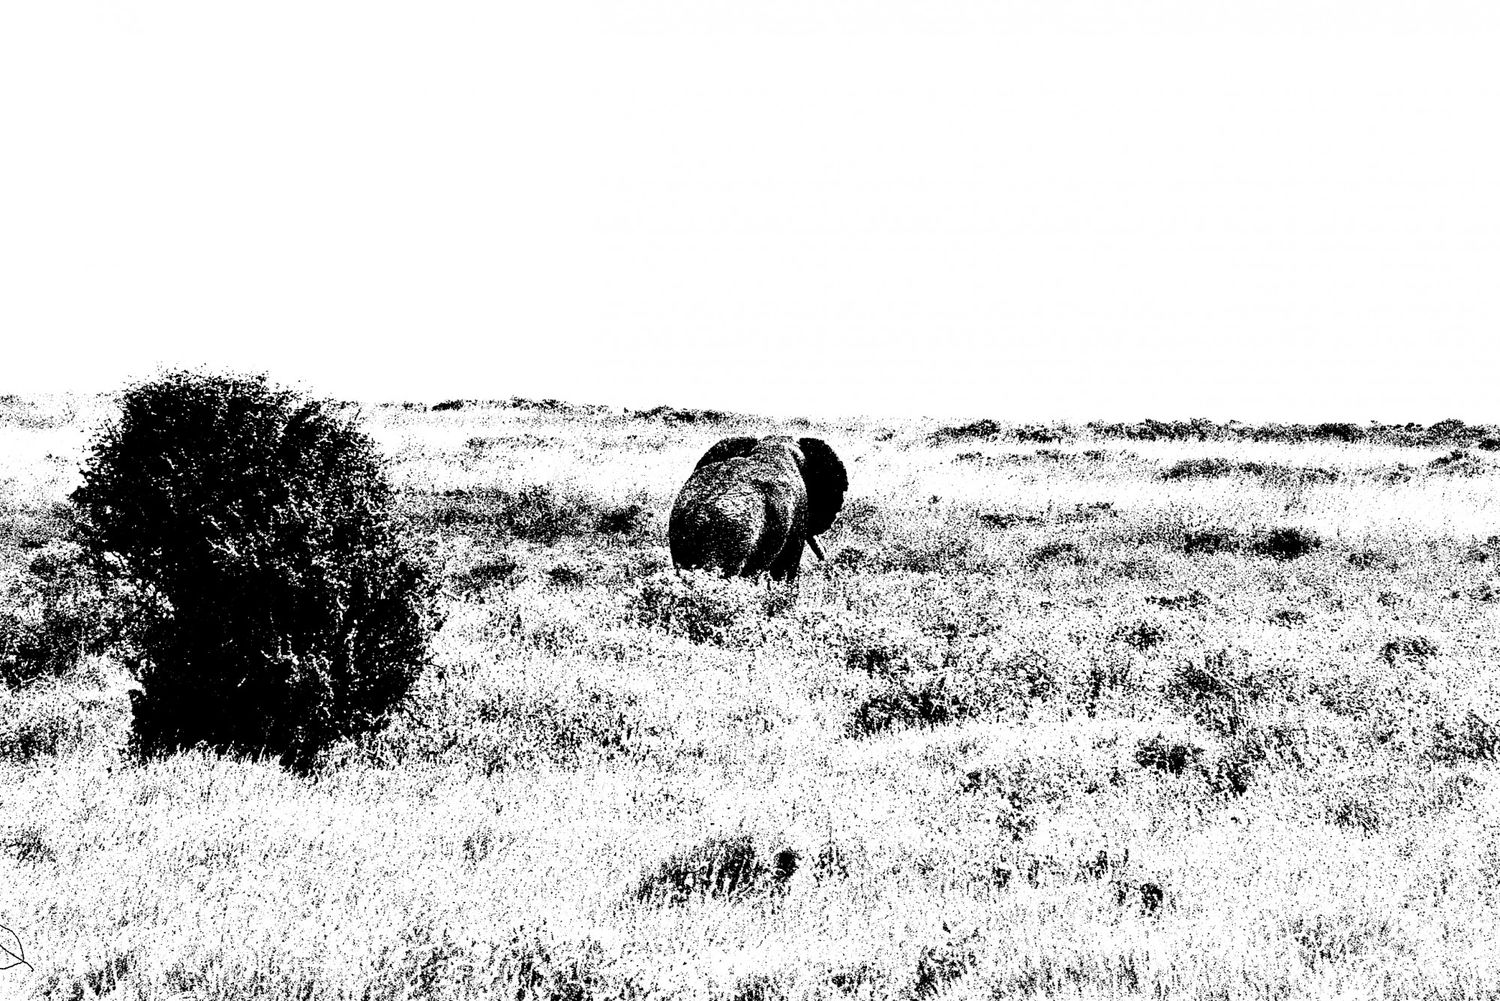 Elephant - 2, Serengeti 2016   Edition 1 of 2